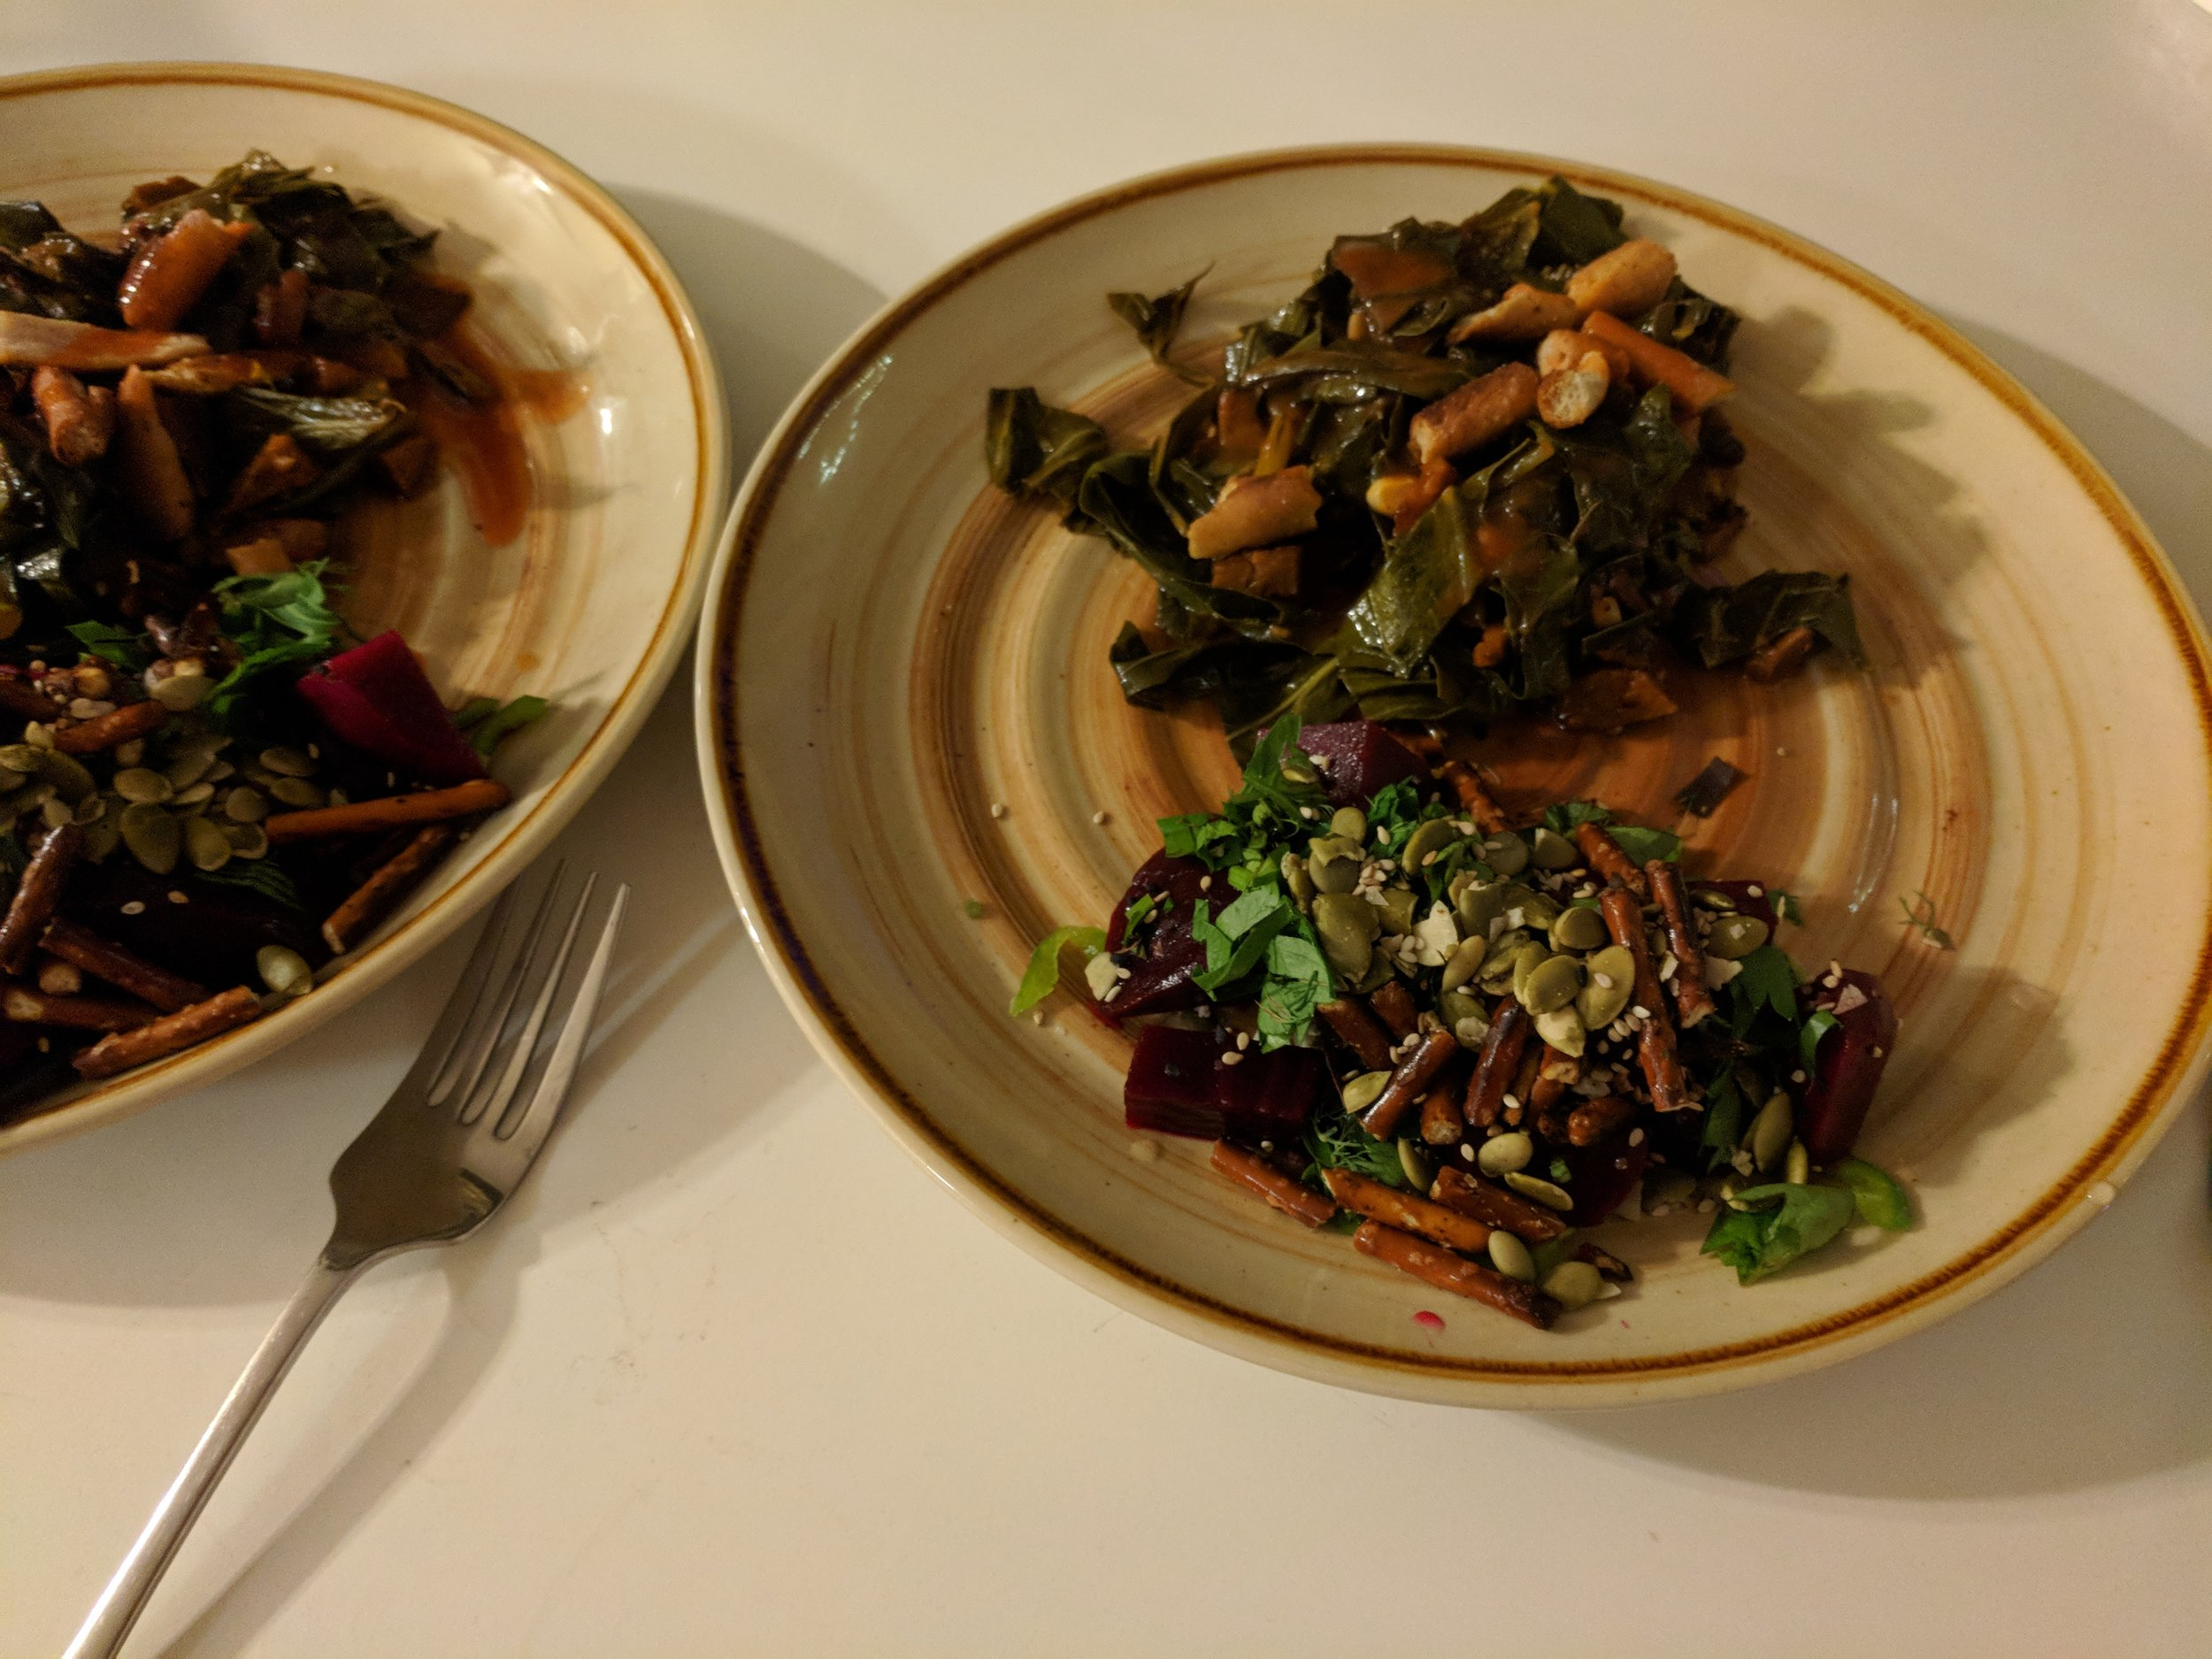 bonus duo from the Superiority Burger cookbook – roasted beet salad with crushed pretzels and hot maple collards